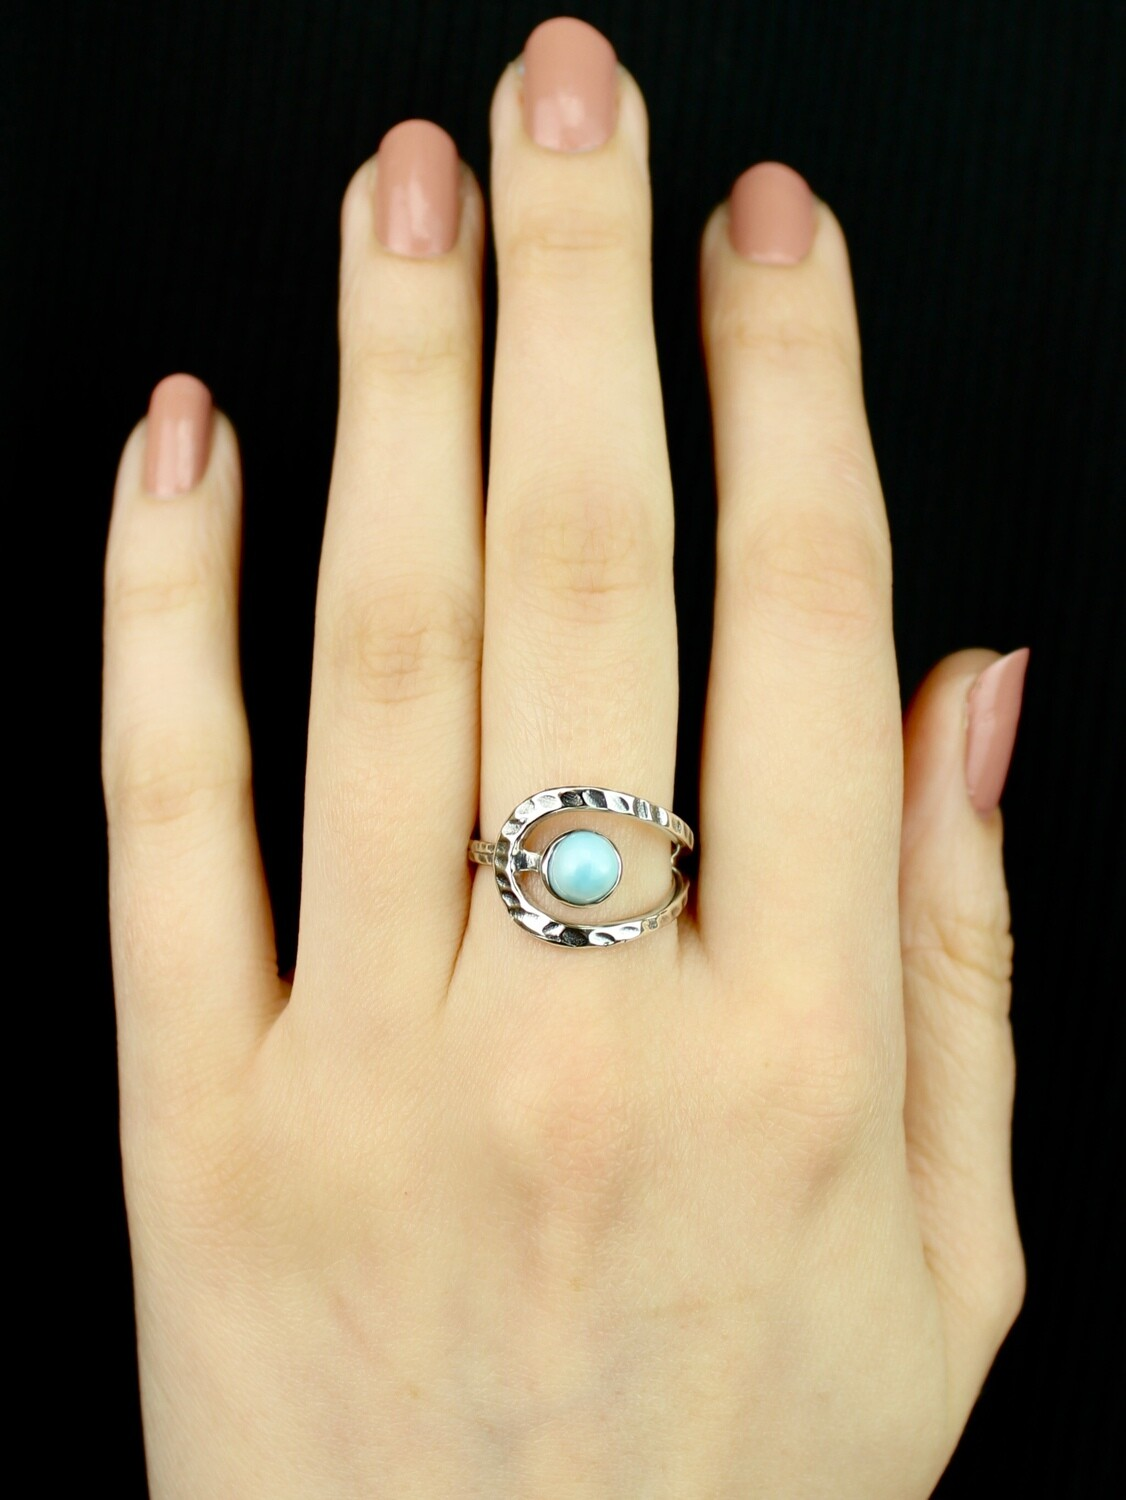 SIZE 7.75 -Sterling Silver Larimar Ring - RIG7128